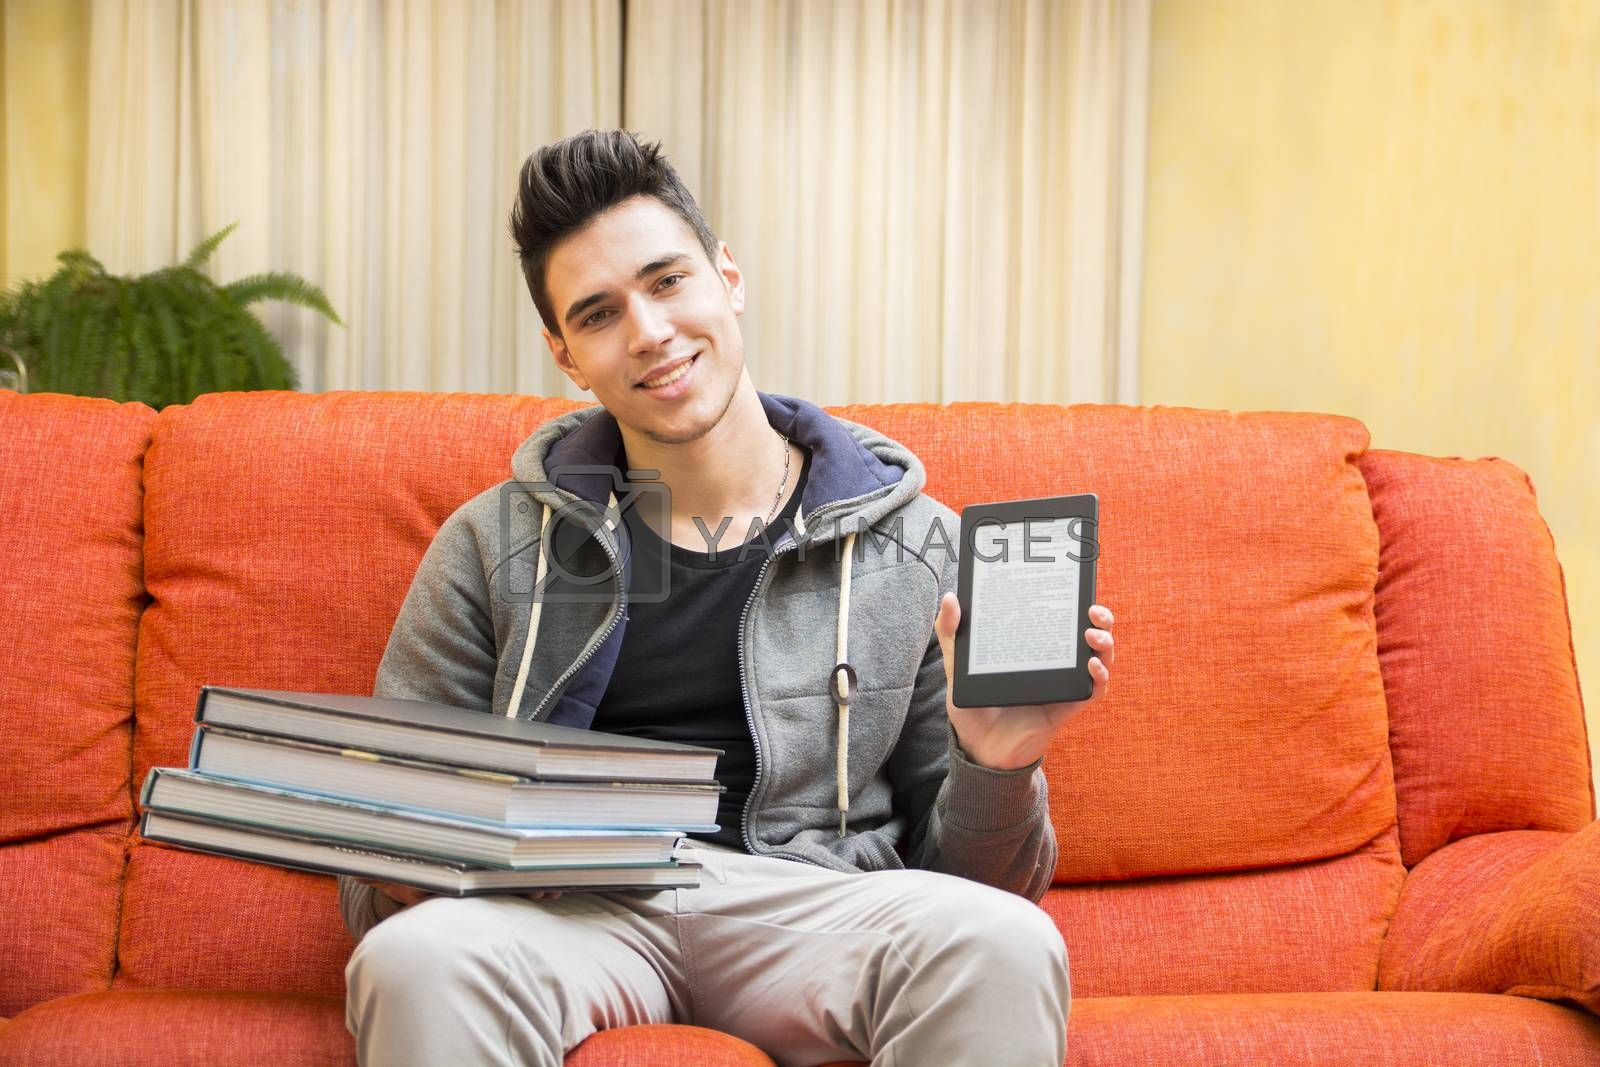 Smiling young man showing difference between light and handy ebook reader in one hand and heavy books on other hand